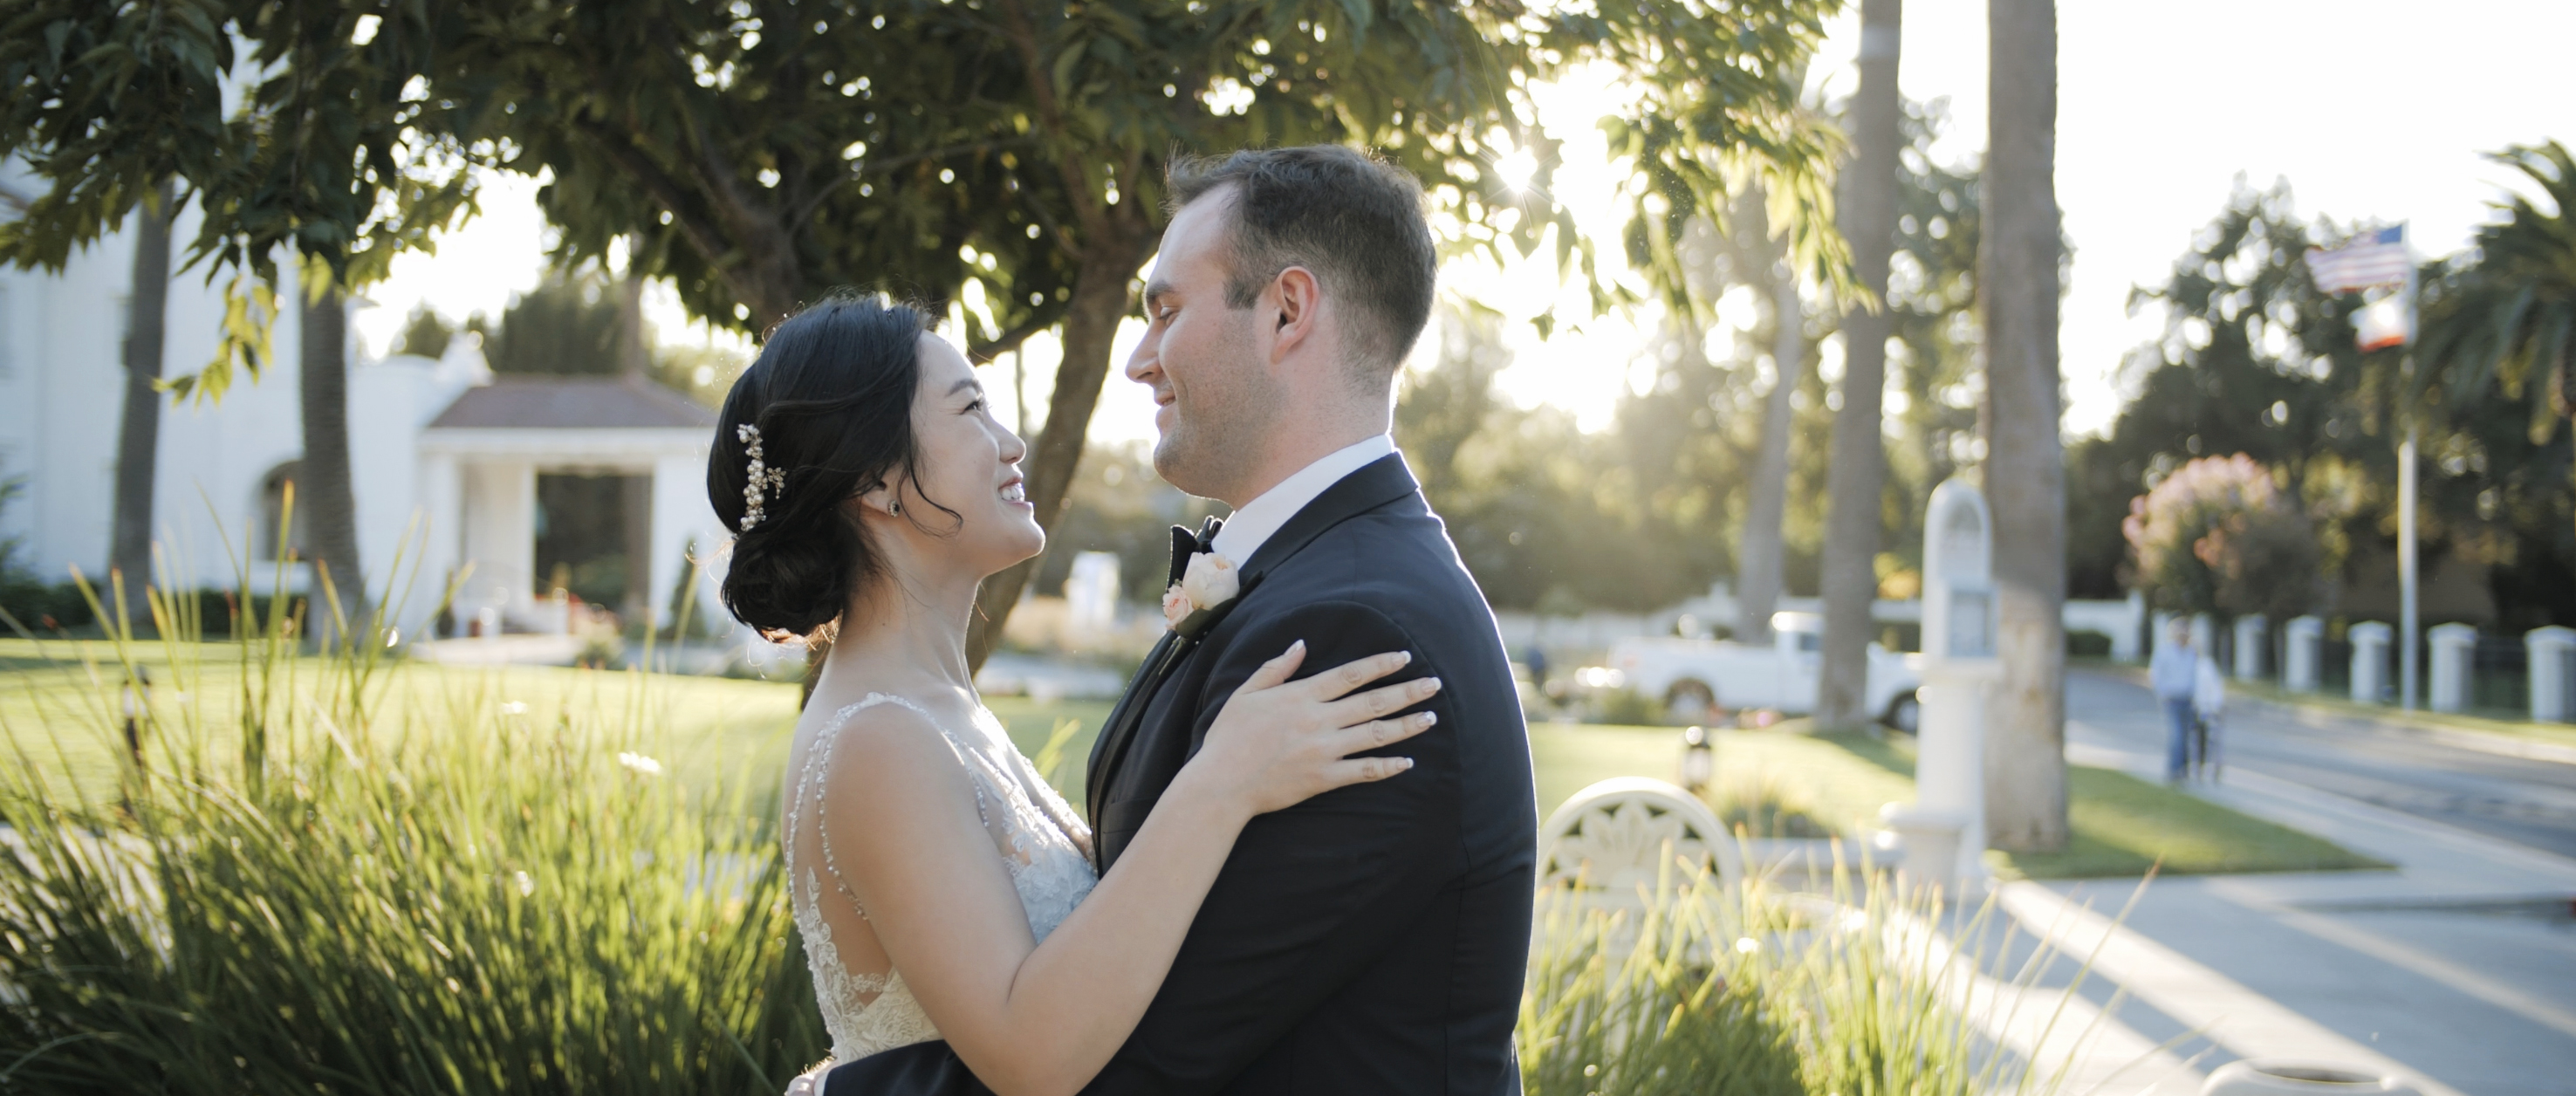 Mike + Eunji | San Jose, California | Hayes Mansion